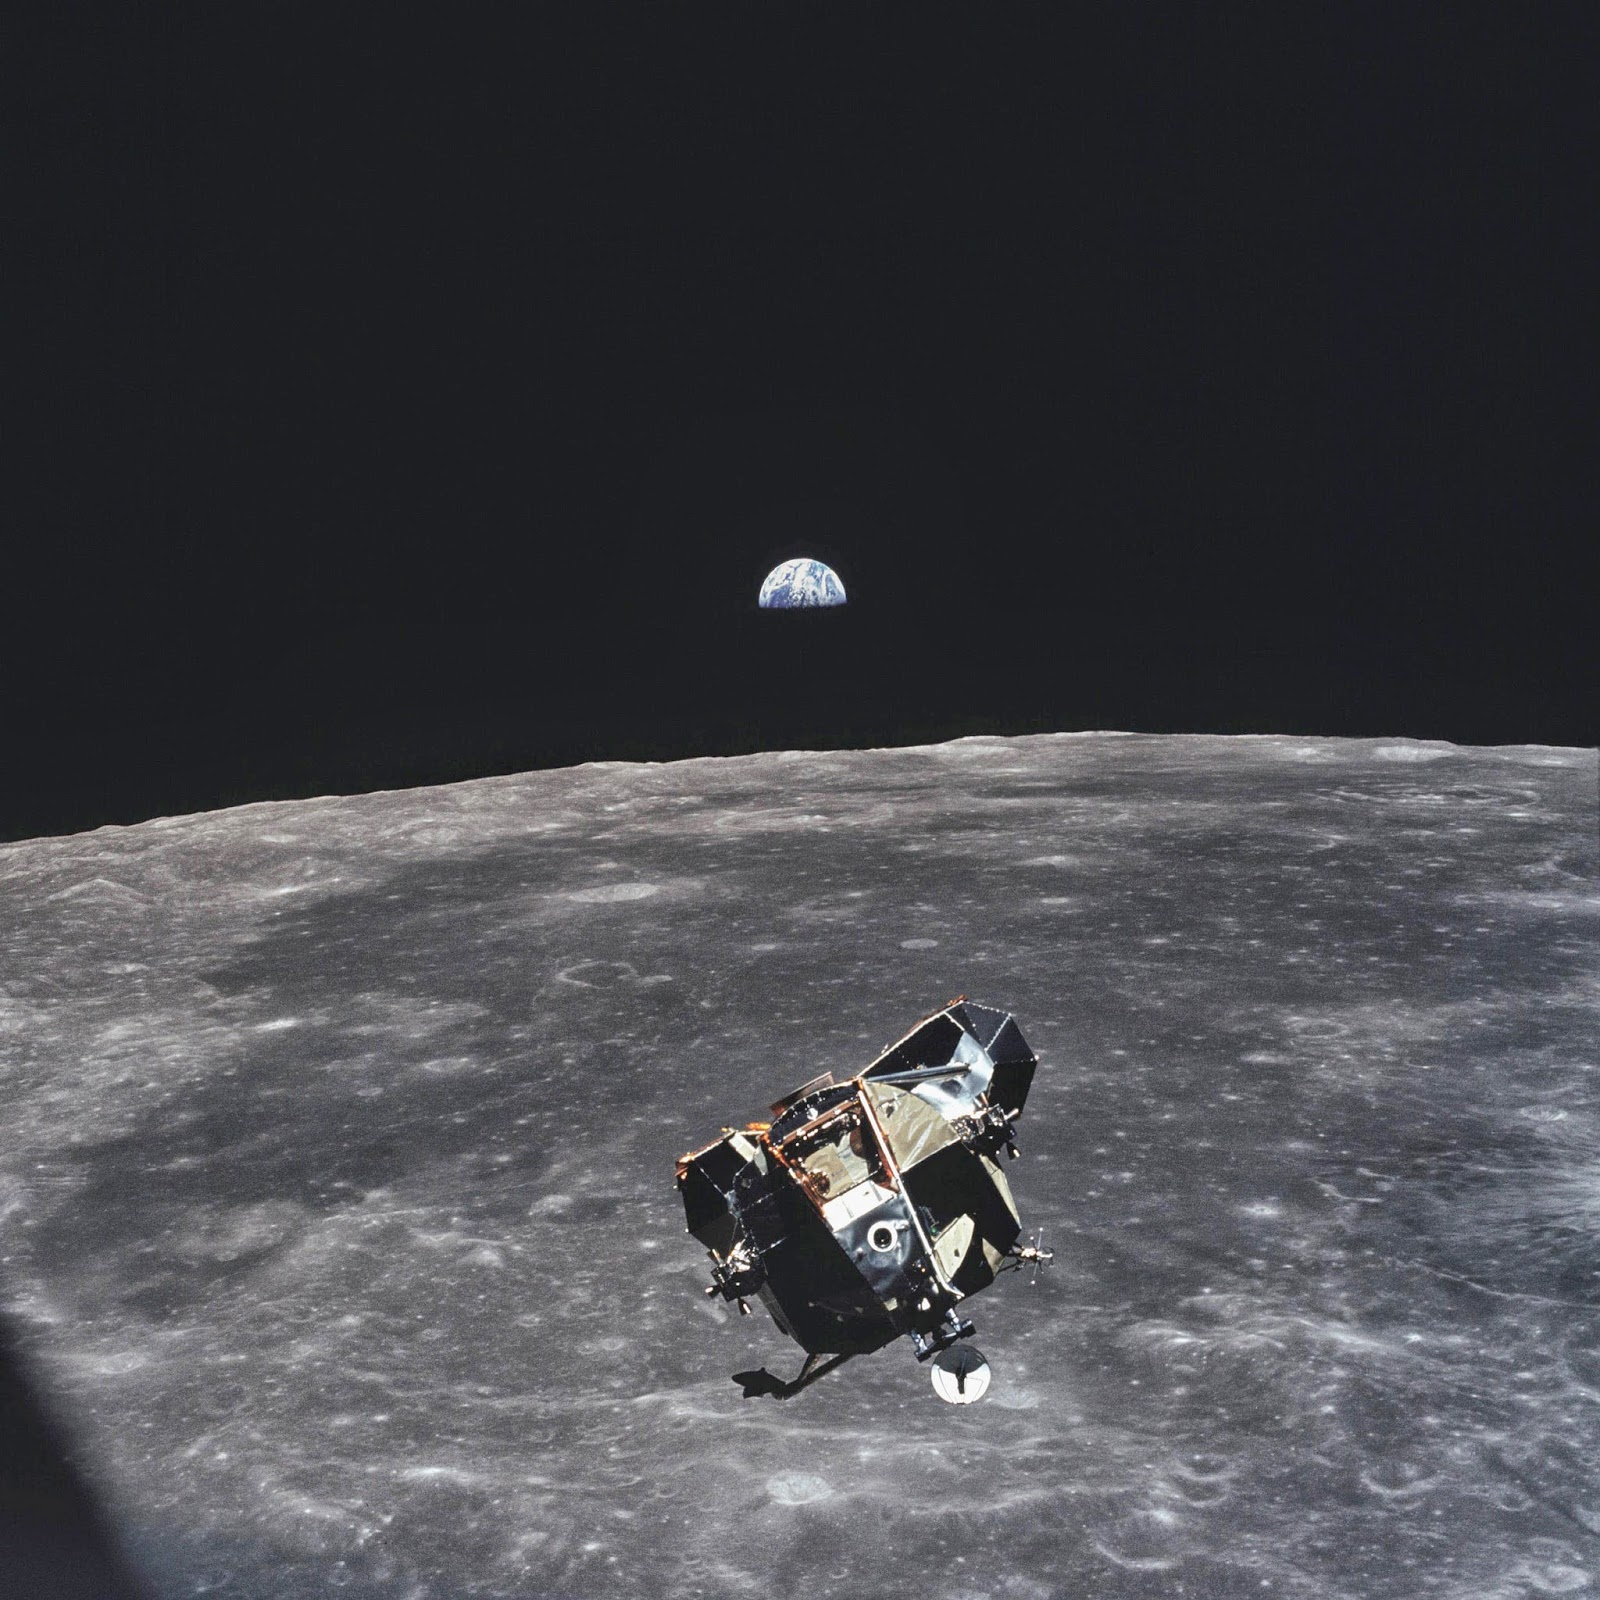 michael collins the astronaut who took this photo is the